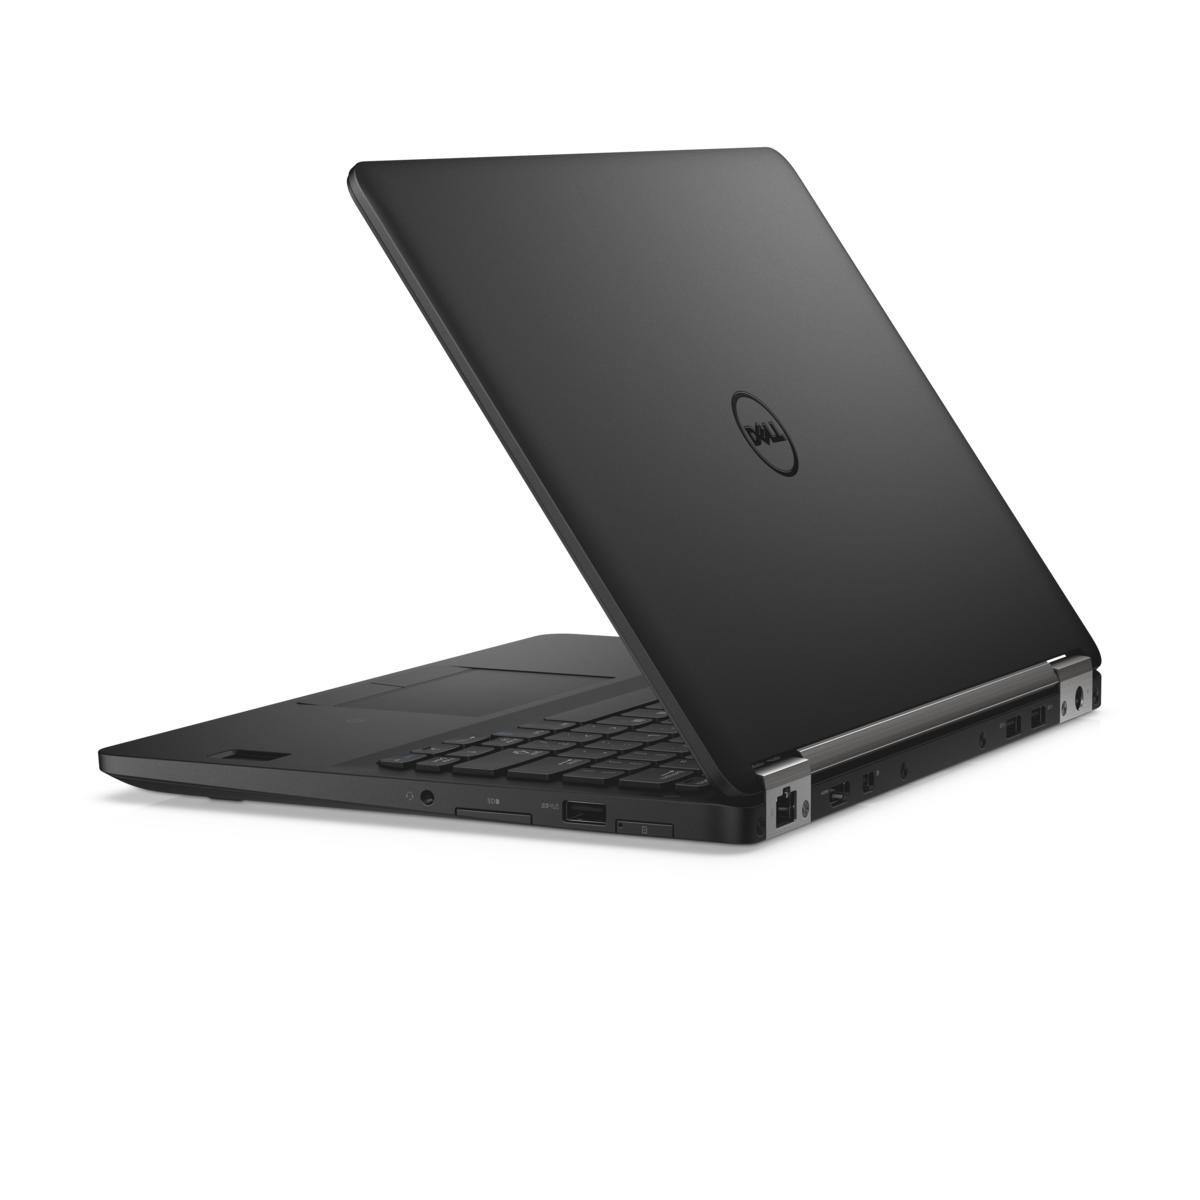 Product Dell Latitude E7270 With 3y Prosupport 125 Core I7 Laptop Inspiron 13 5370 I5 Pink Media